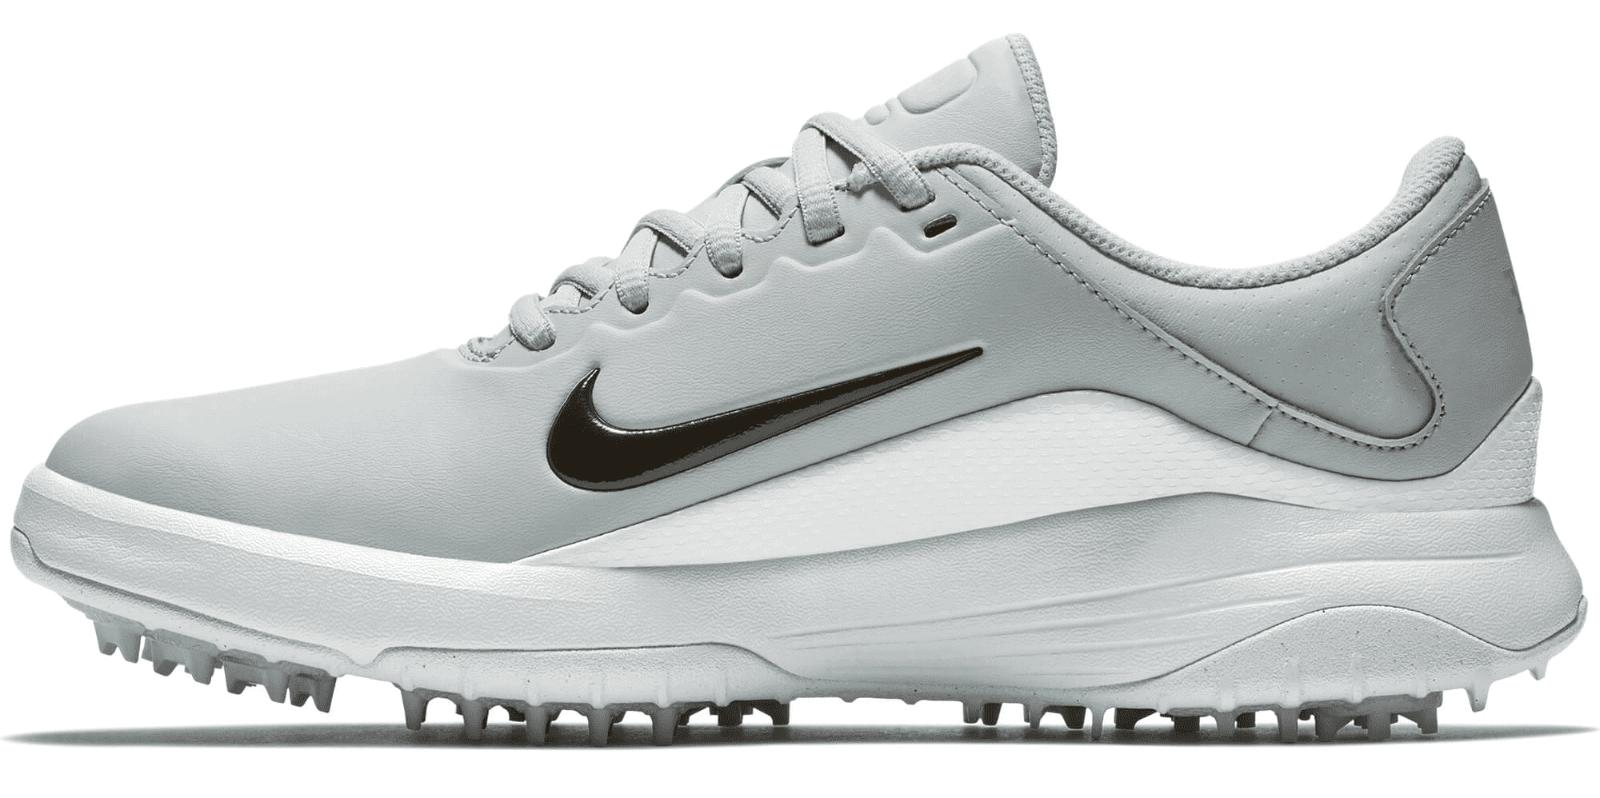 Nike Womens Vapor Shoes - New